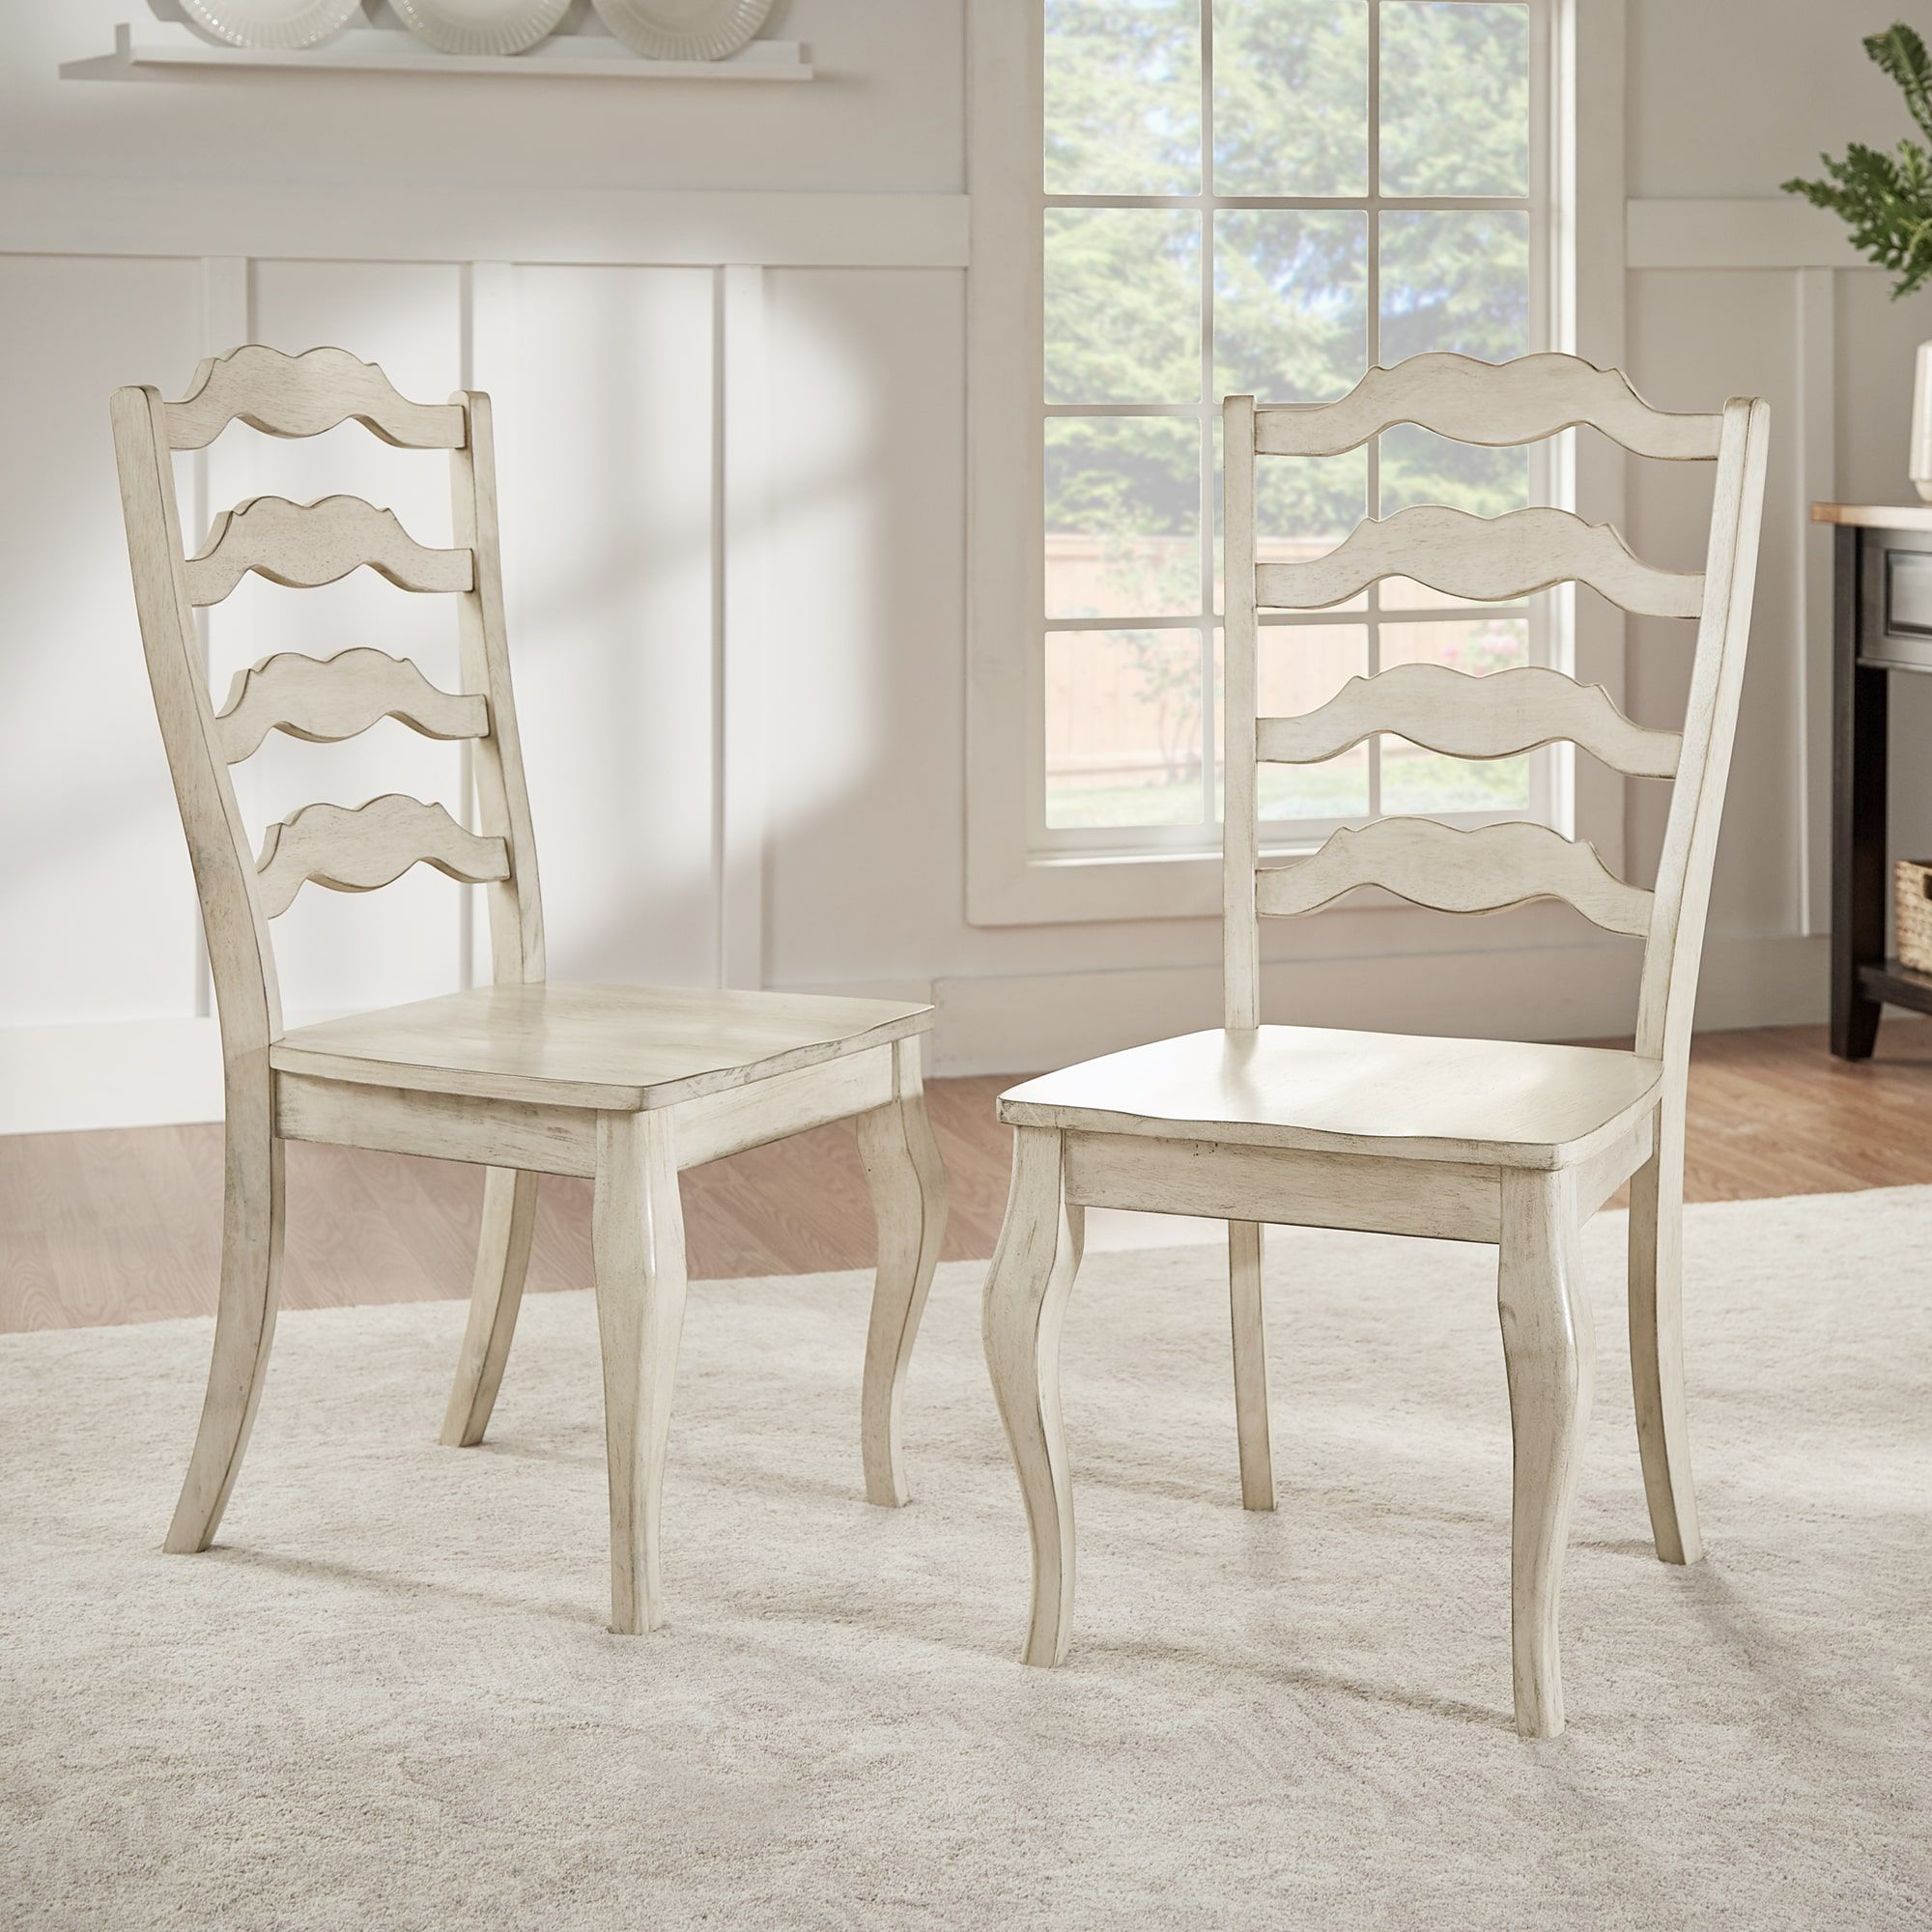 Eleanor French Ladder Back Wood Dining Chair (Set of 2) by iNSPIRE Q Classic  (Oak Finish Chairs), Tan (Rubberwood)